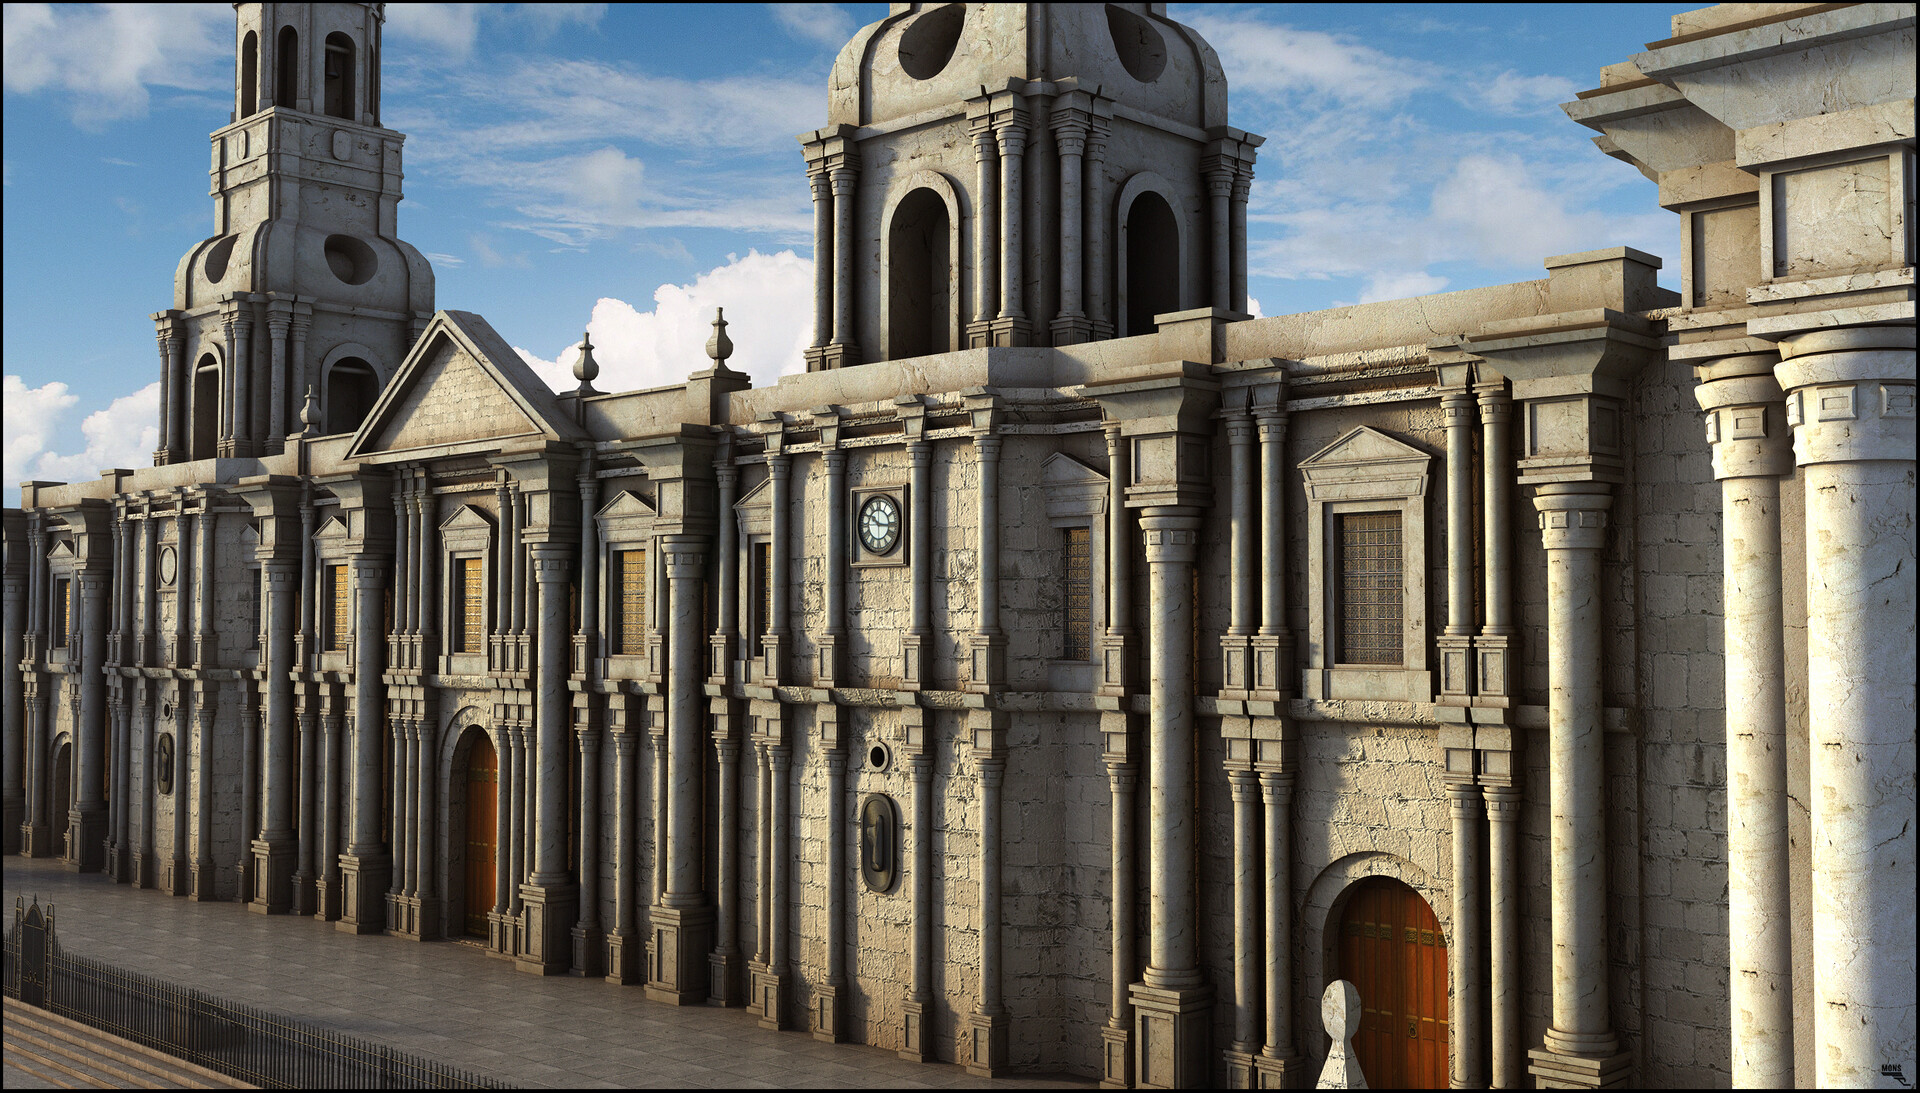 Marc mons catedral12